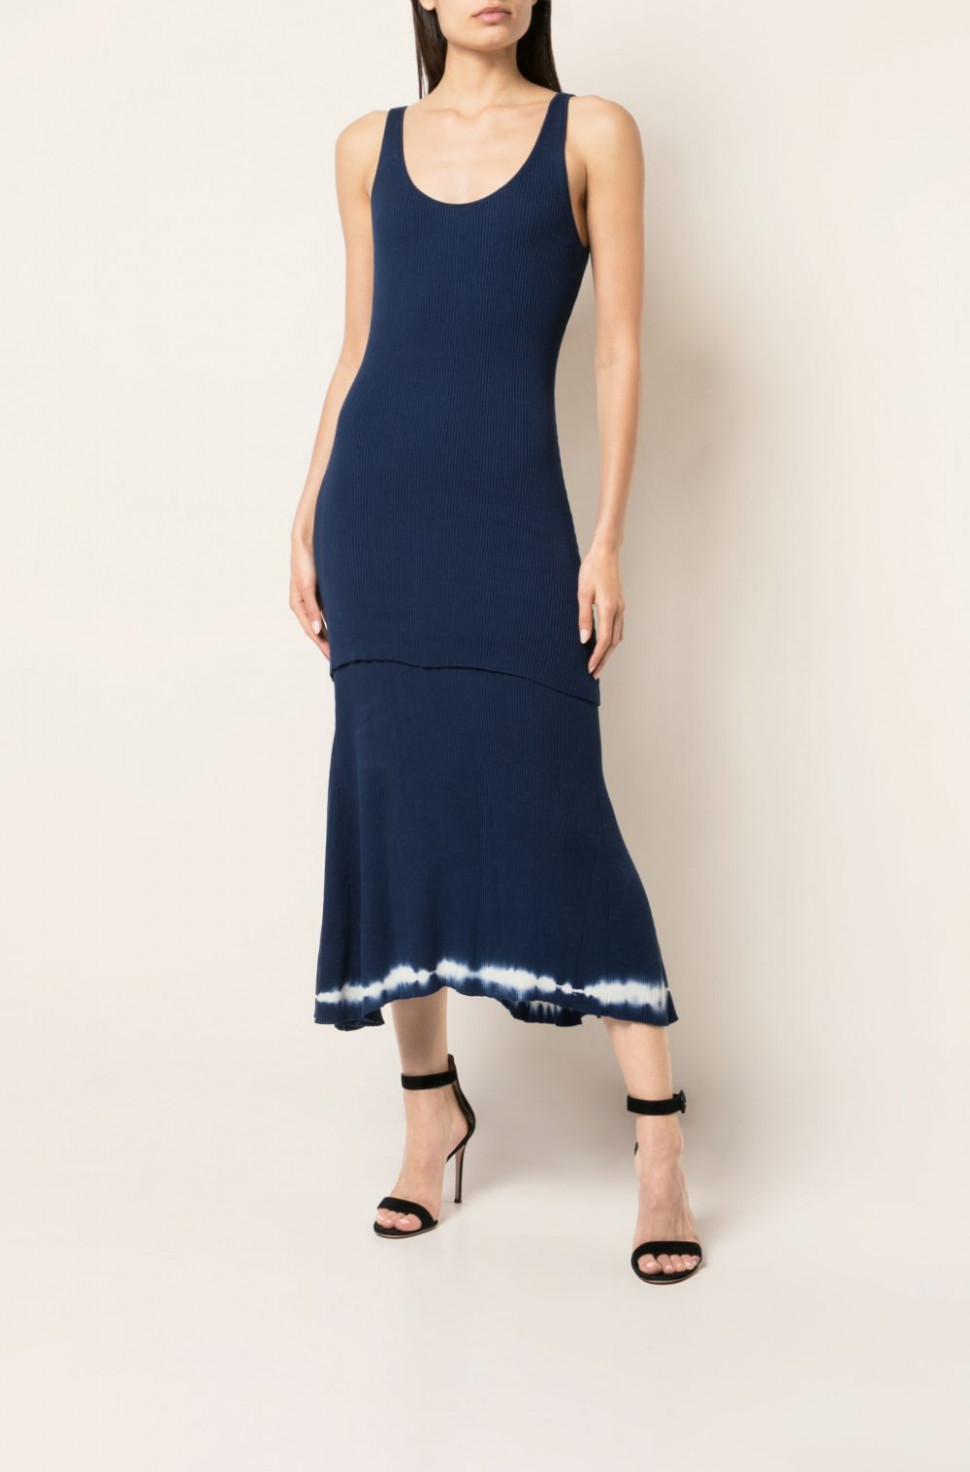 Shinobu' Strickkleid in blau  Altuzarra Official Site